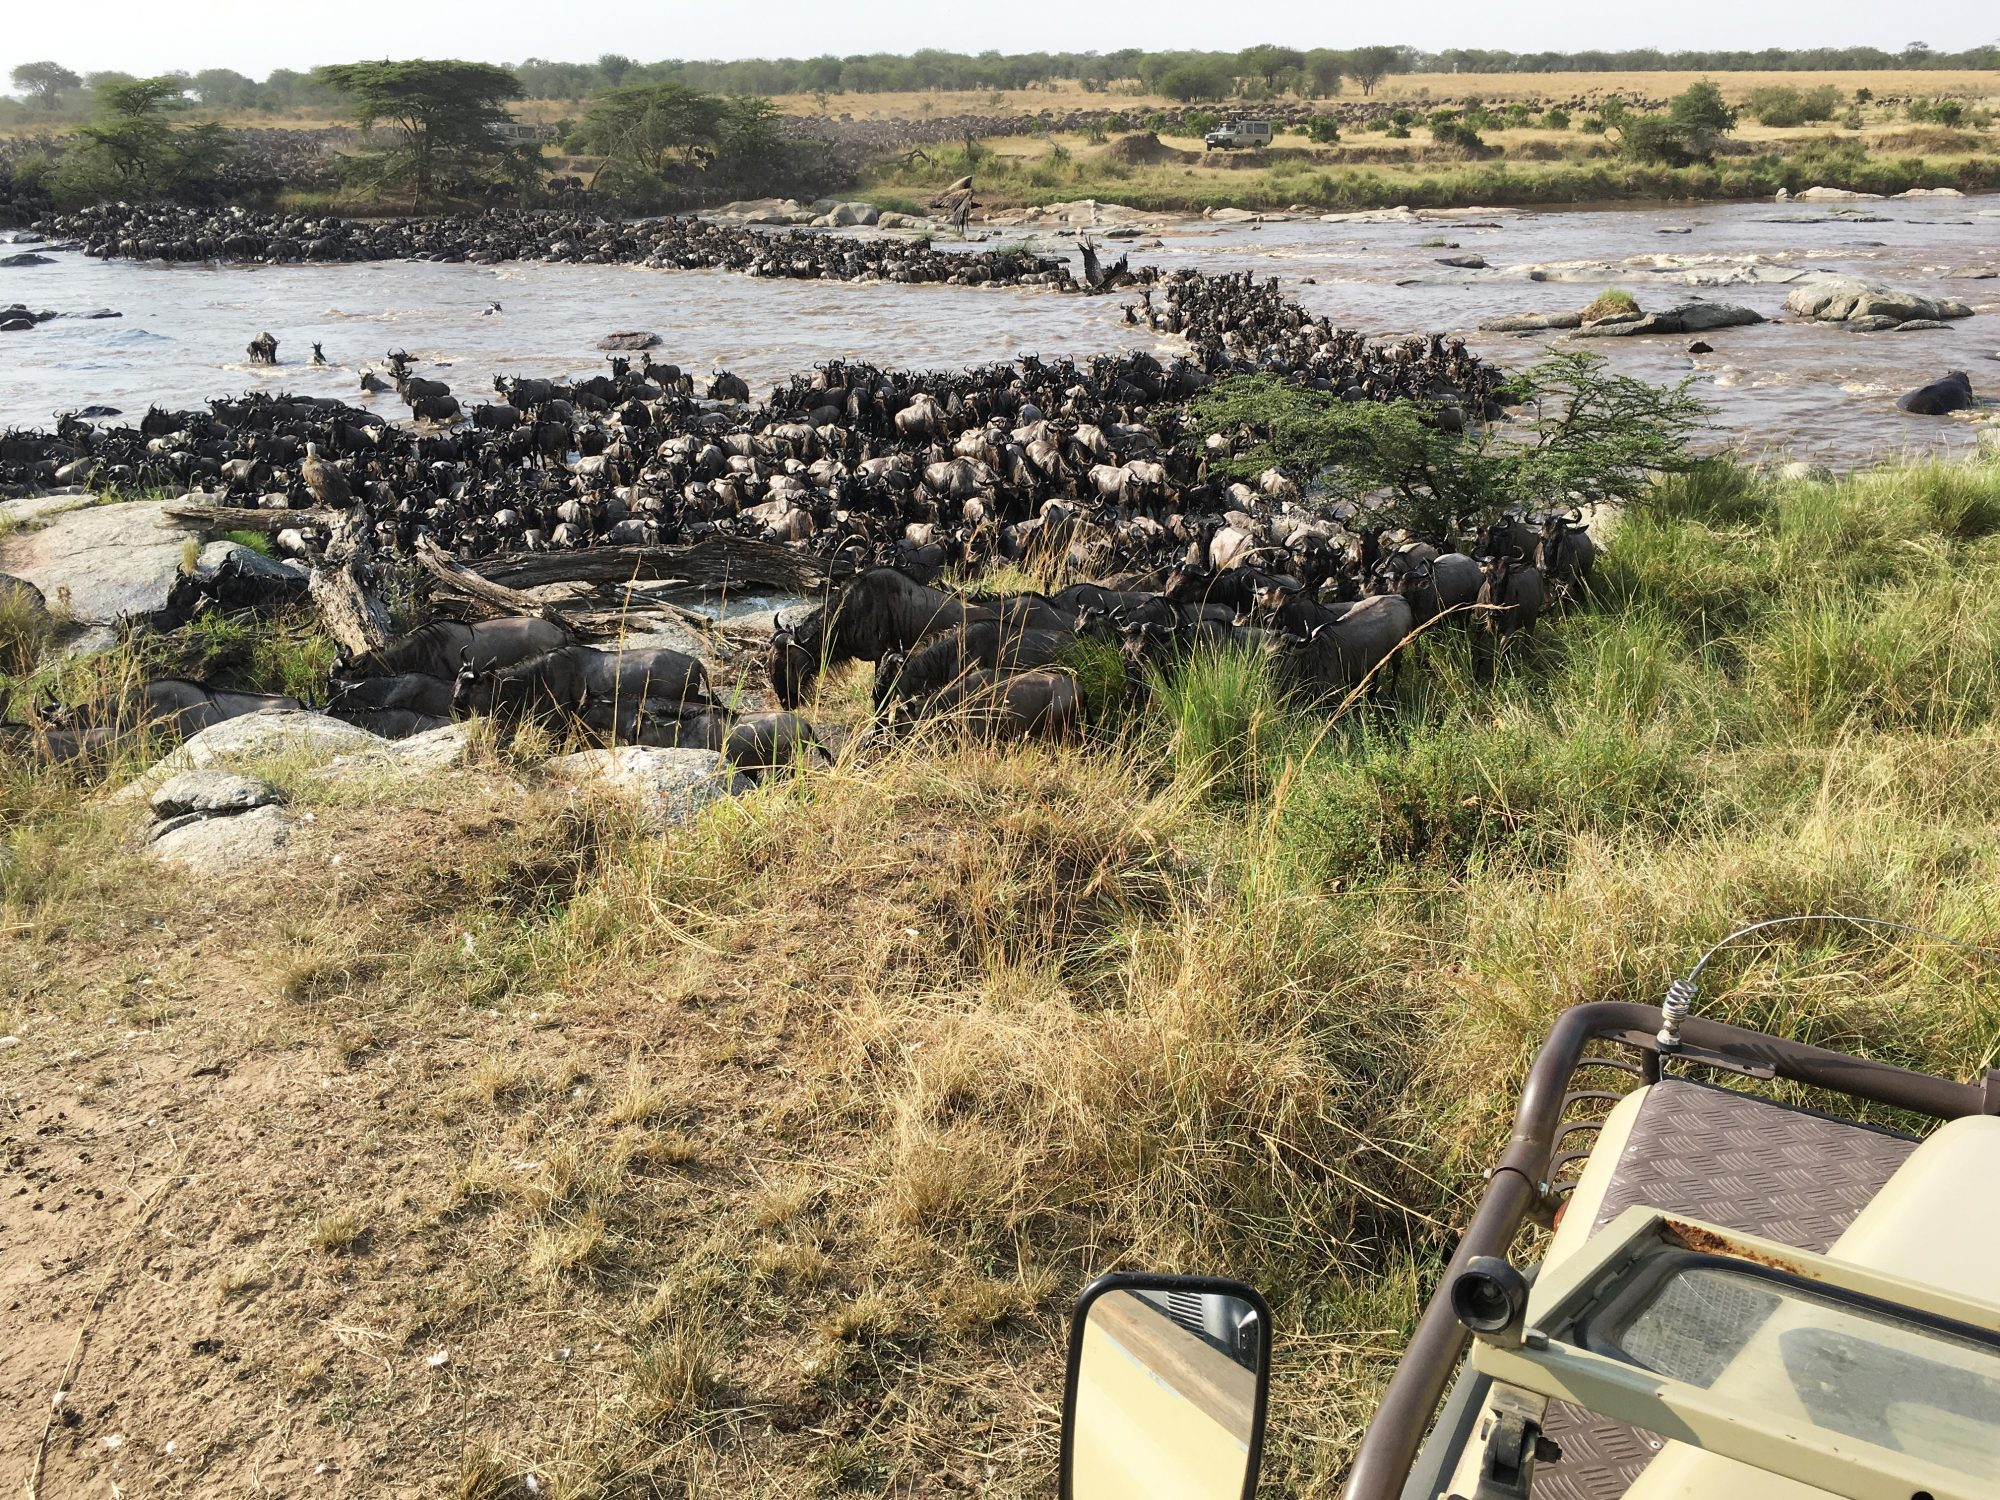 Title: Wildebeest Crossing